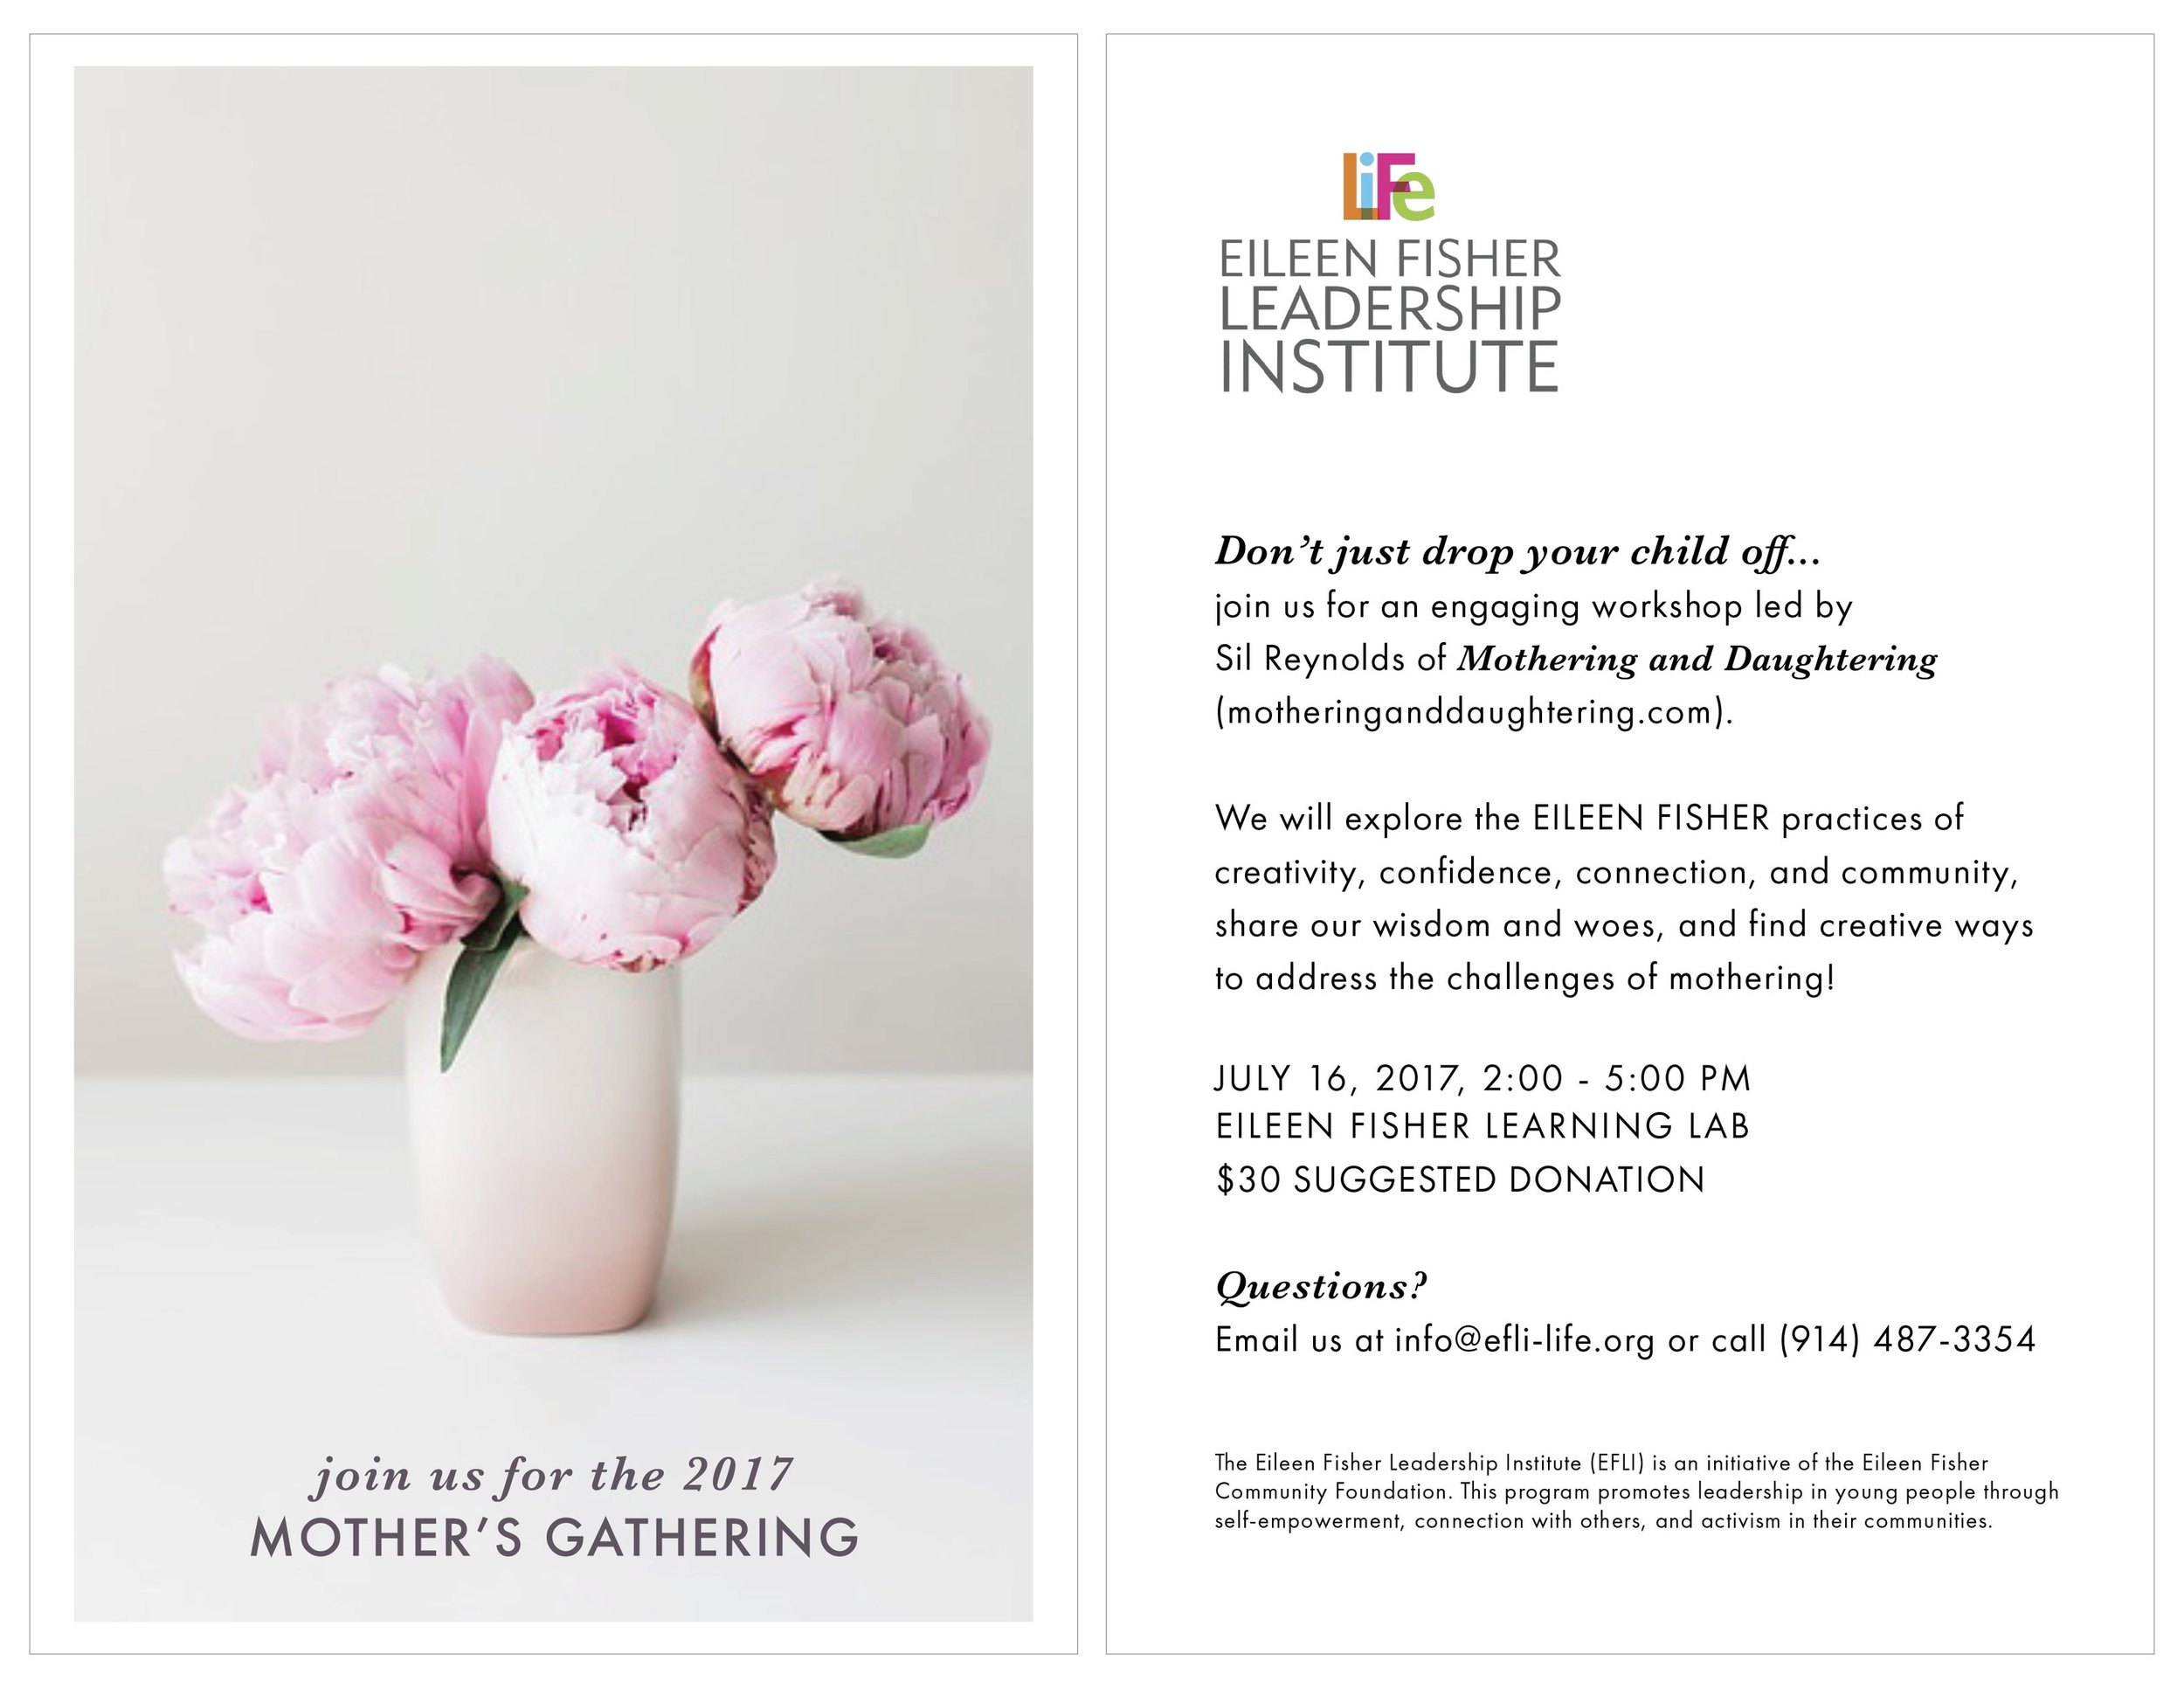 mother's gathering postcard, august 2017 - 5.5 x 11 inch postcard designed for mothers of participants in the 2017 Eileen Fisher Leadership Institute summer programs.LEFT: FrontRIGHT: BACK